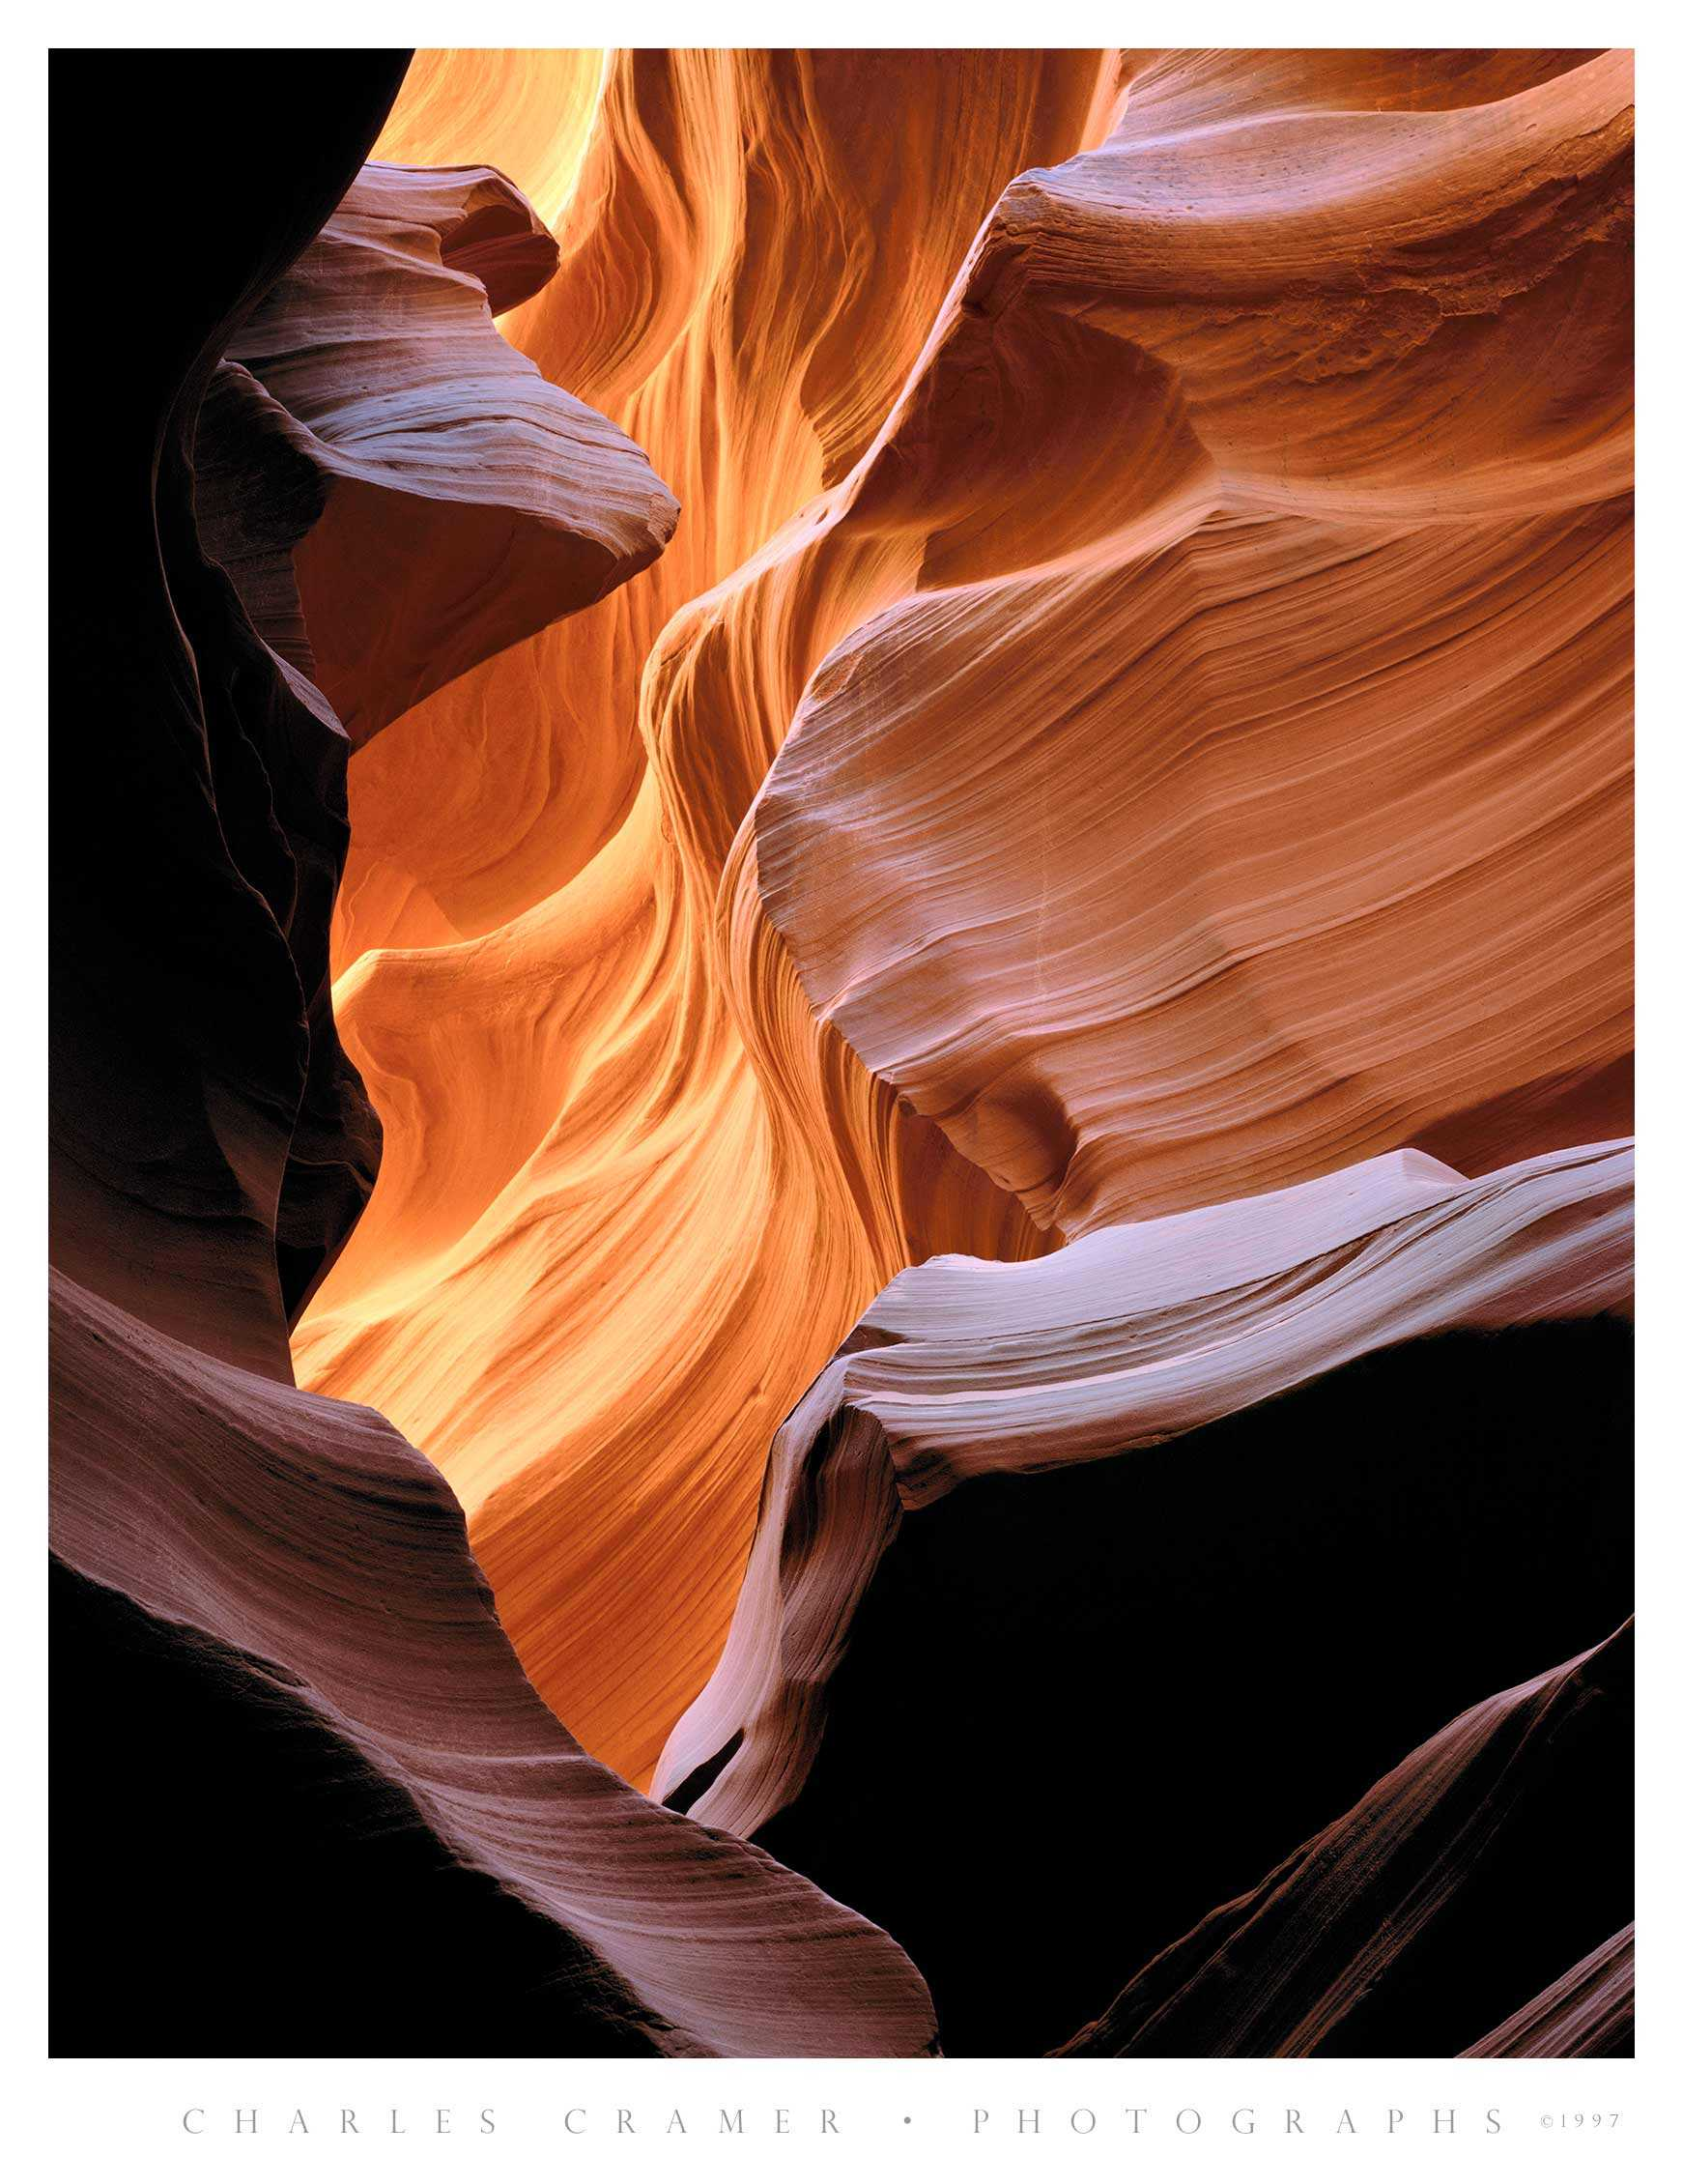 Waves, Lower Antelope Canyon, Arizona